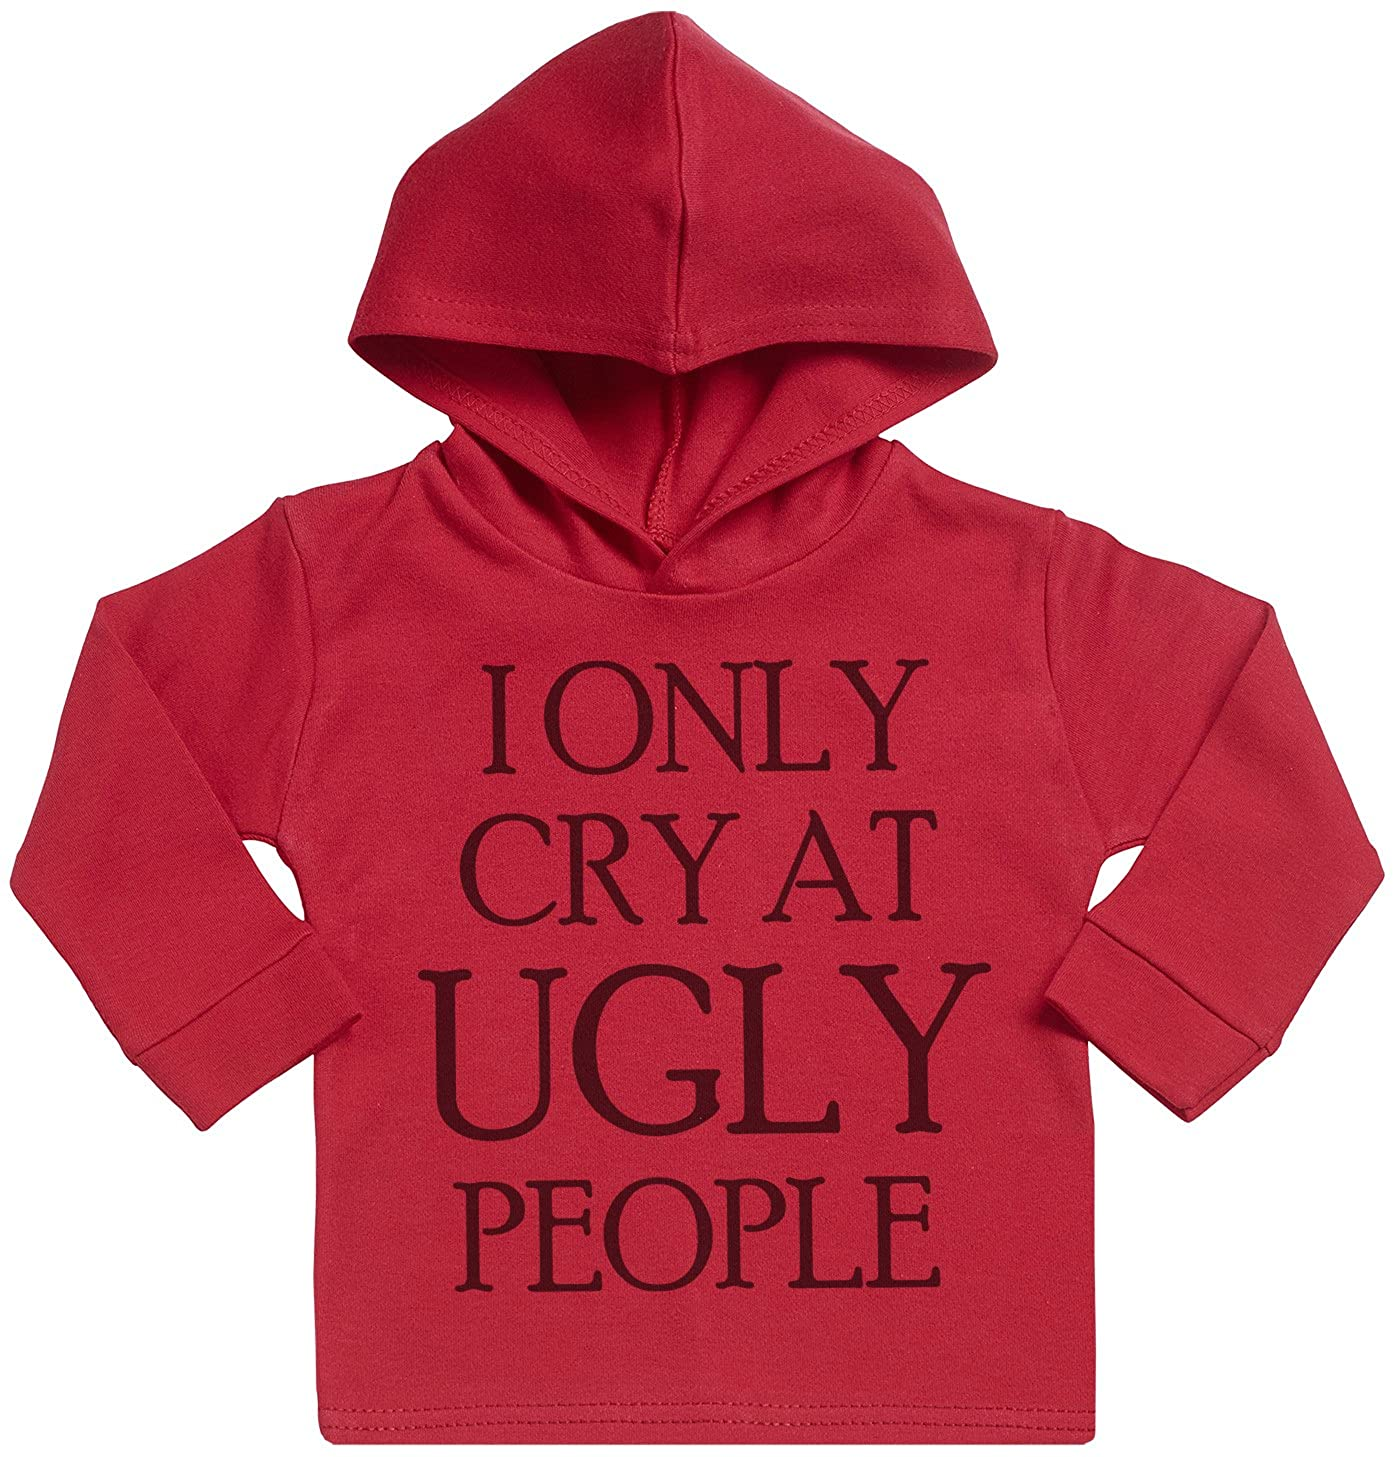 Spoilt Rotten SR - I Only Cry At Ugly People Baby Hoodie - Baby Boy Hoodie - Baby Girl Hoodie - Baby Gift - Baby Hooded Sweatshirt - Grey SRO16_H_GRY